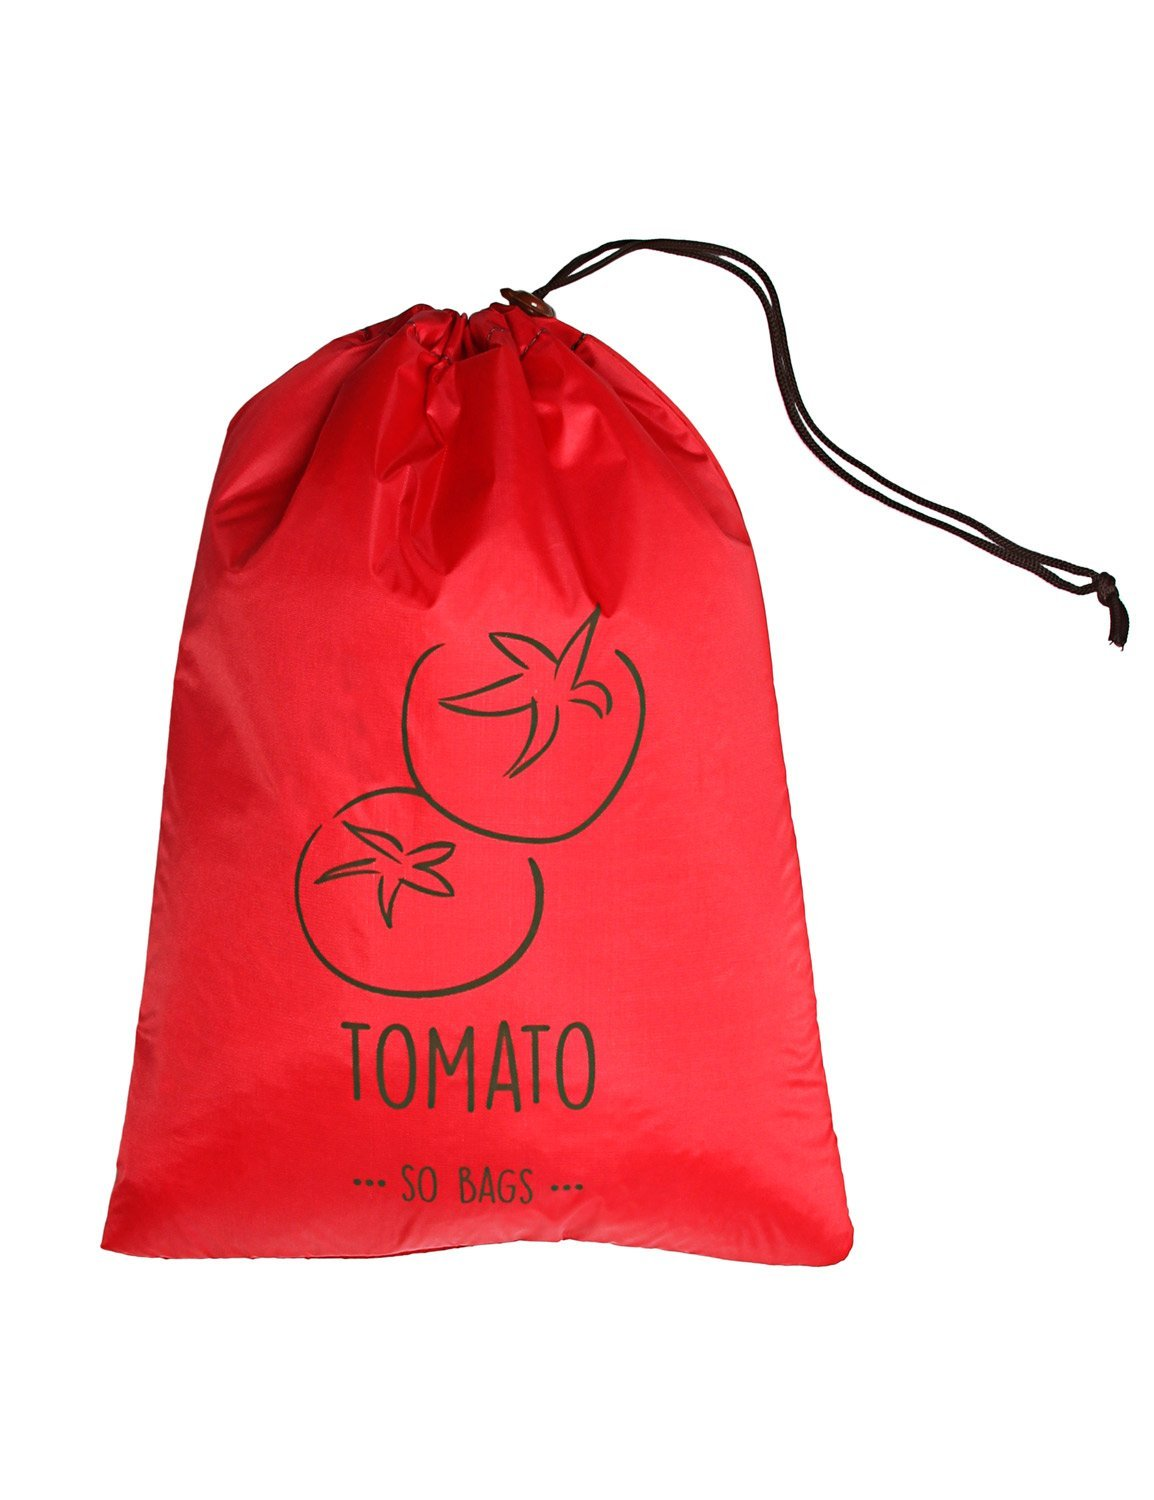 Keep Tomato Fresh Up to 2 Weeks Stop Food Waste with Reusable Storage Bag by In Mind Organic Foods.